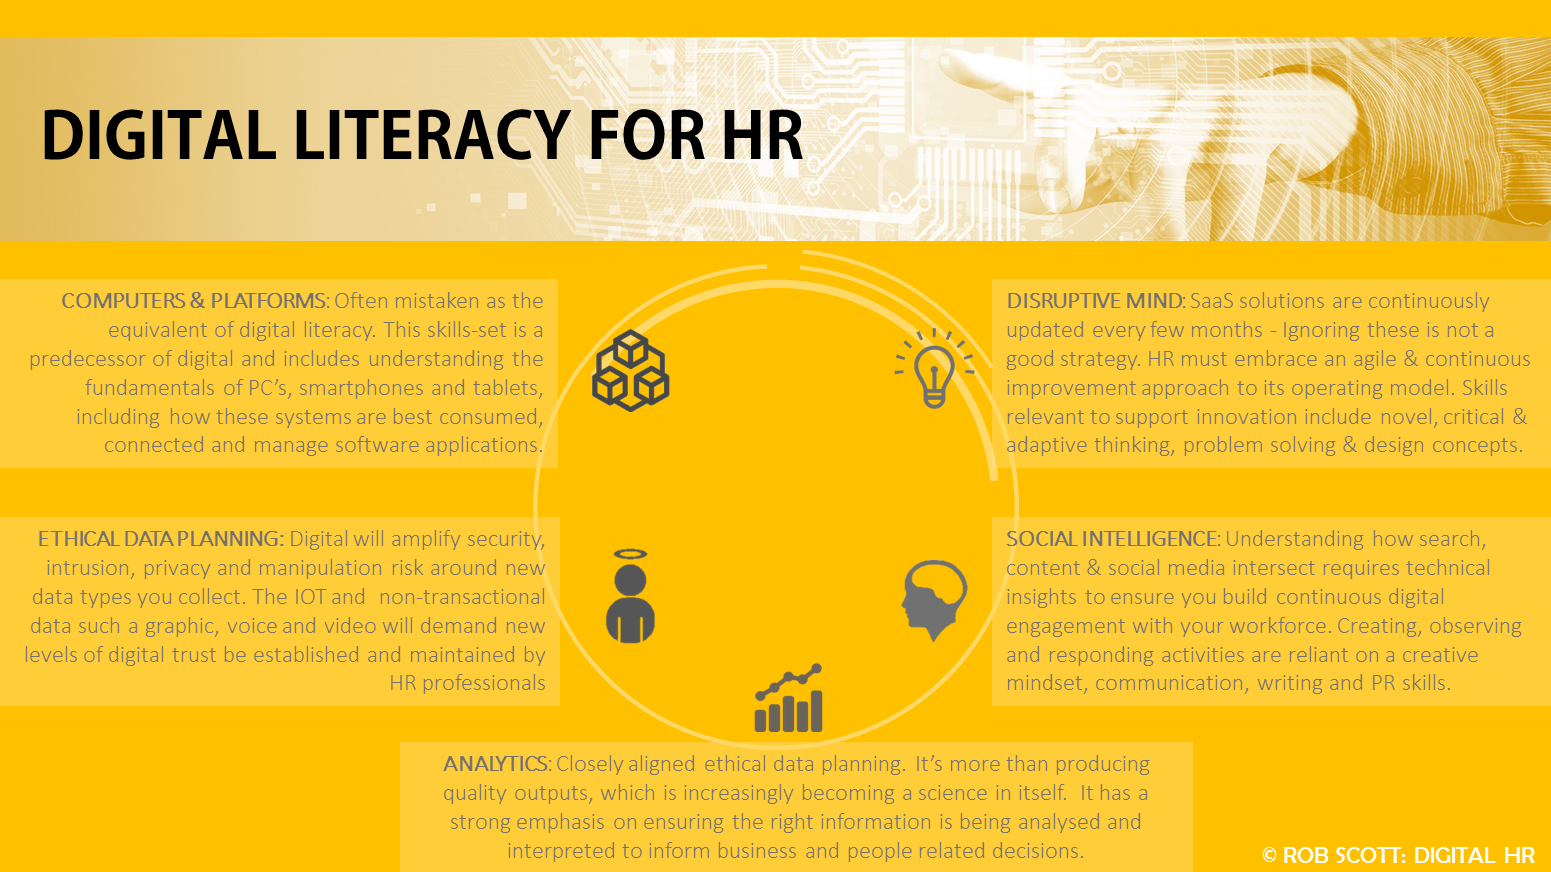 digital literacy for HR